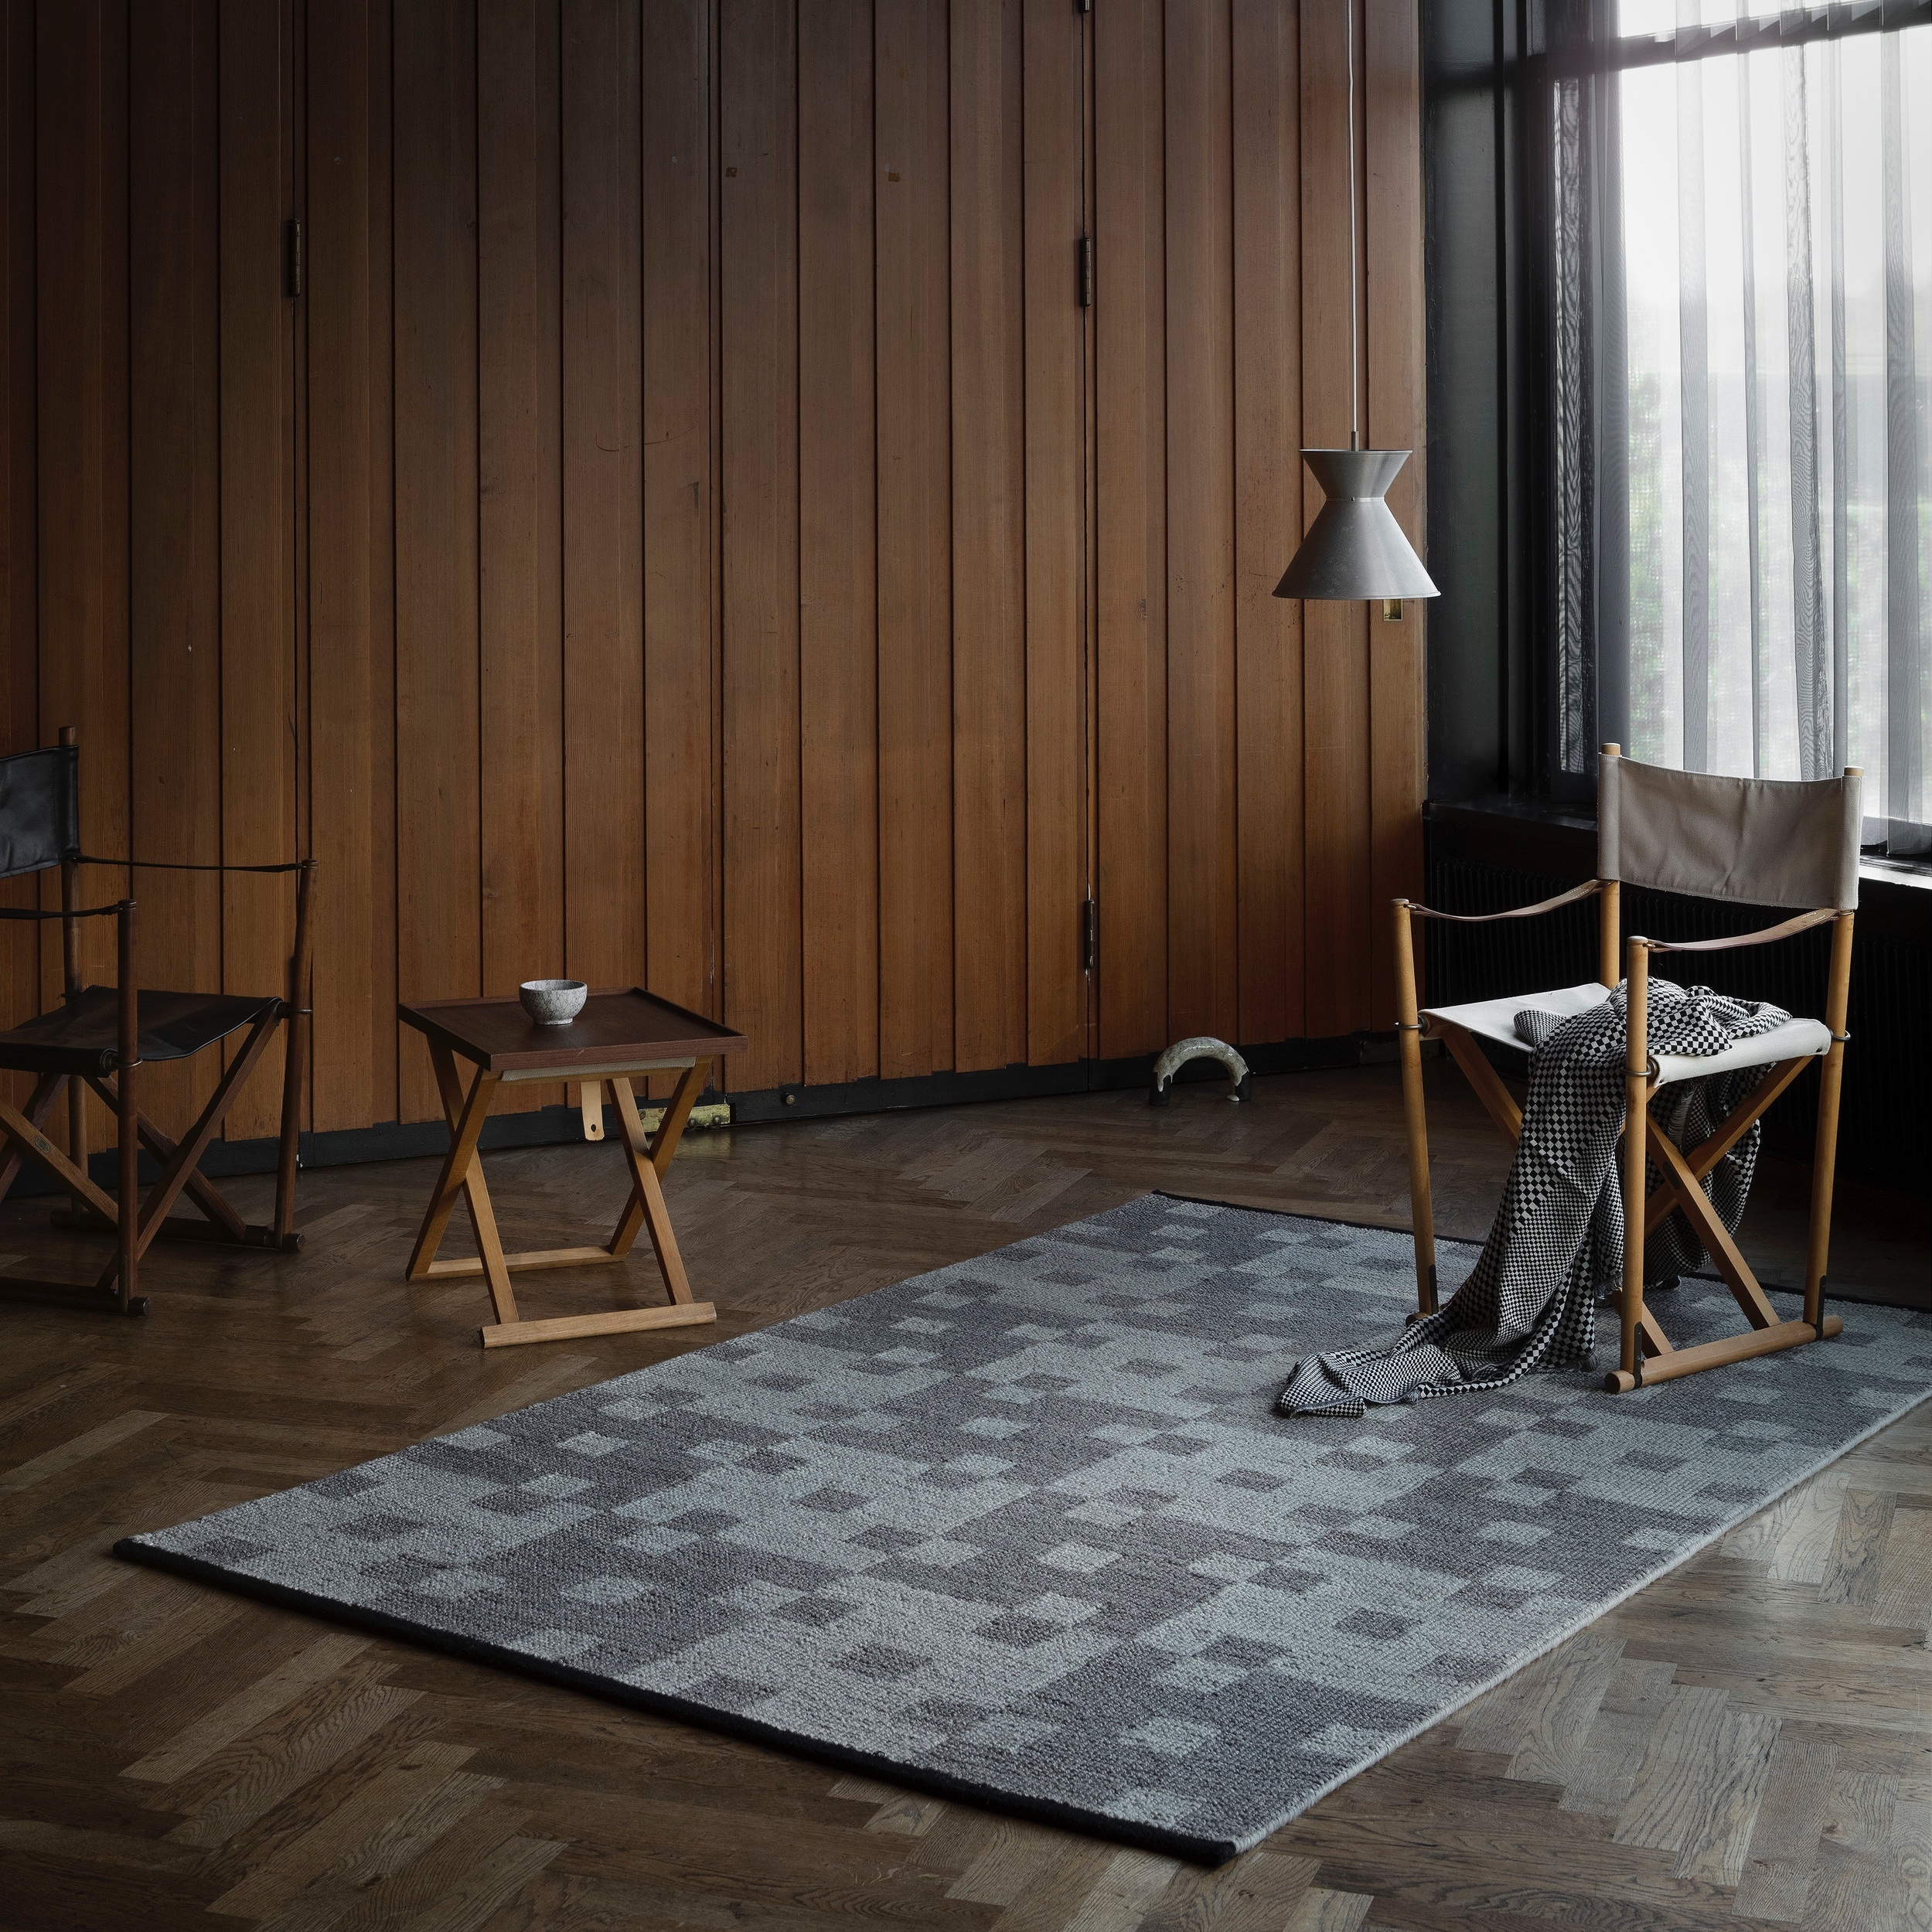 The Ea Rug, by Morgens Koch